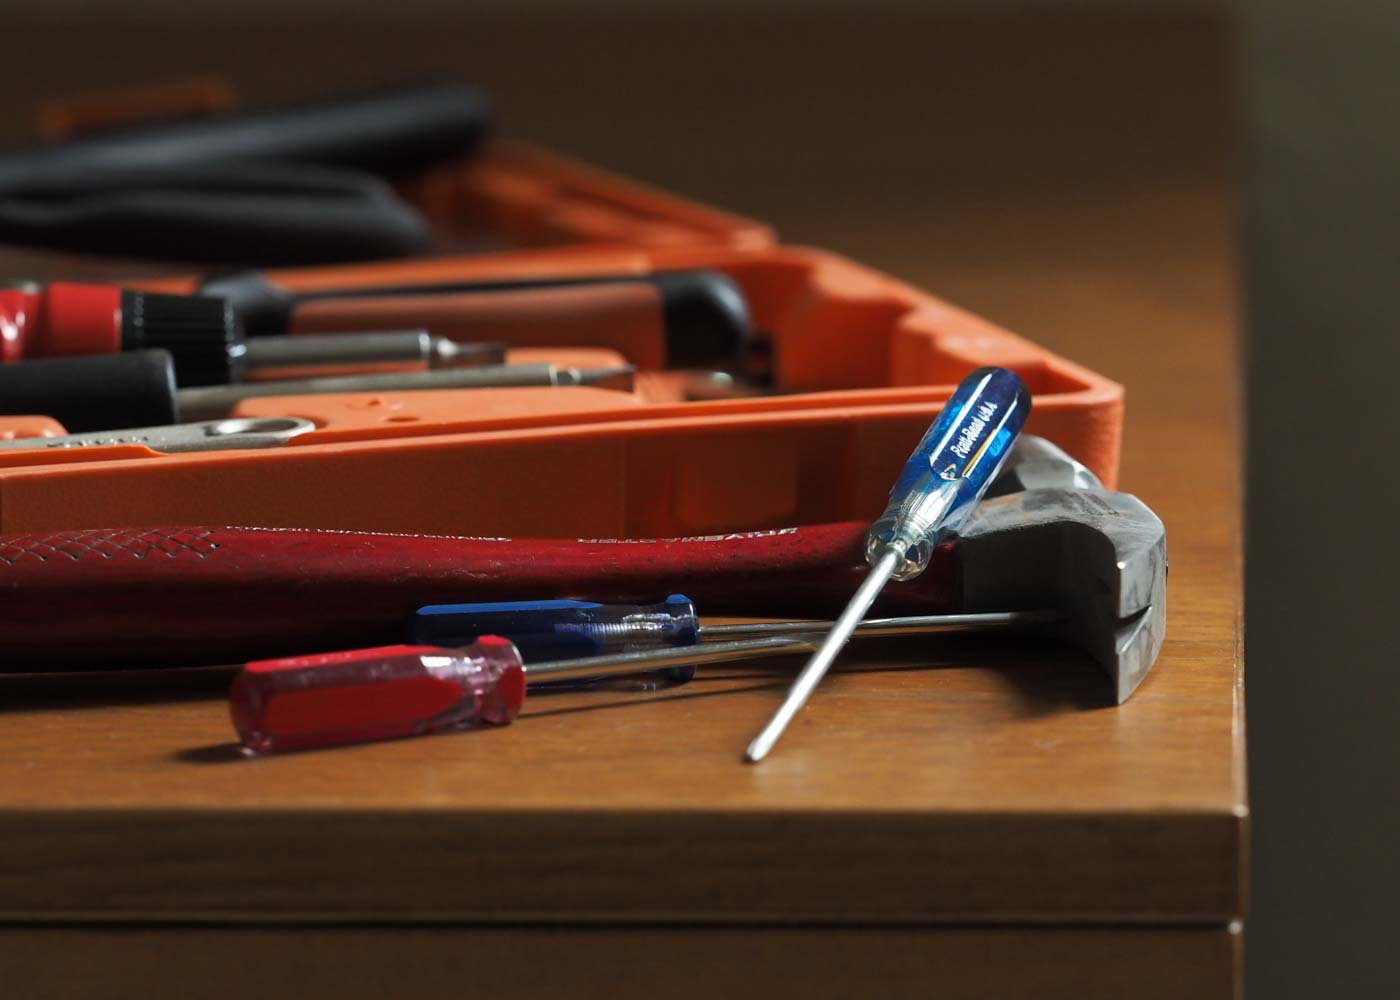 An eminently practical wedding gift: the tools and know-how to take care of basic home repairs.